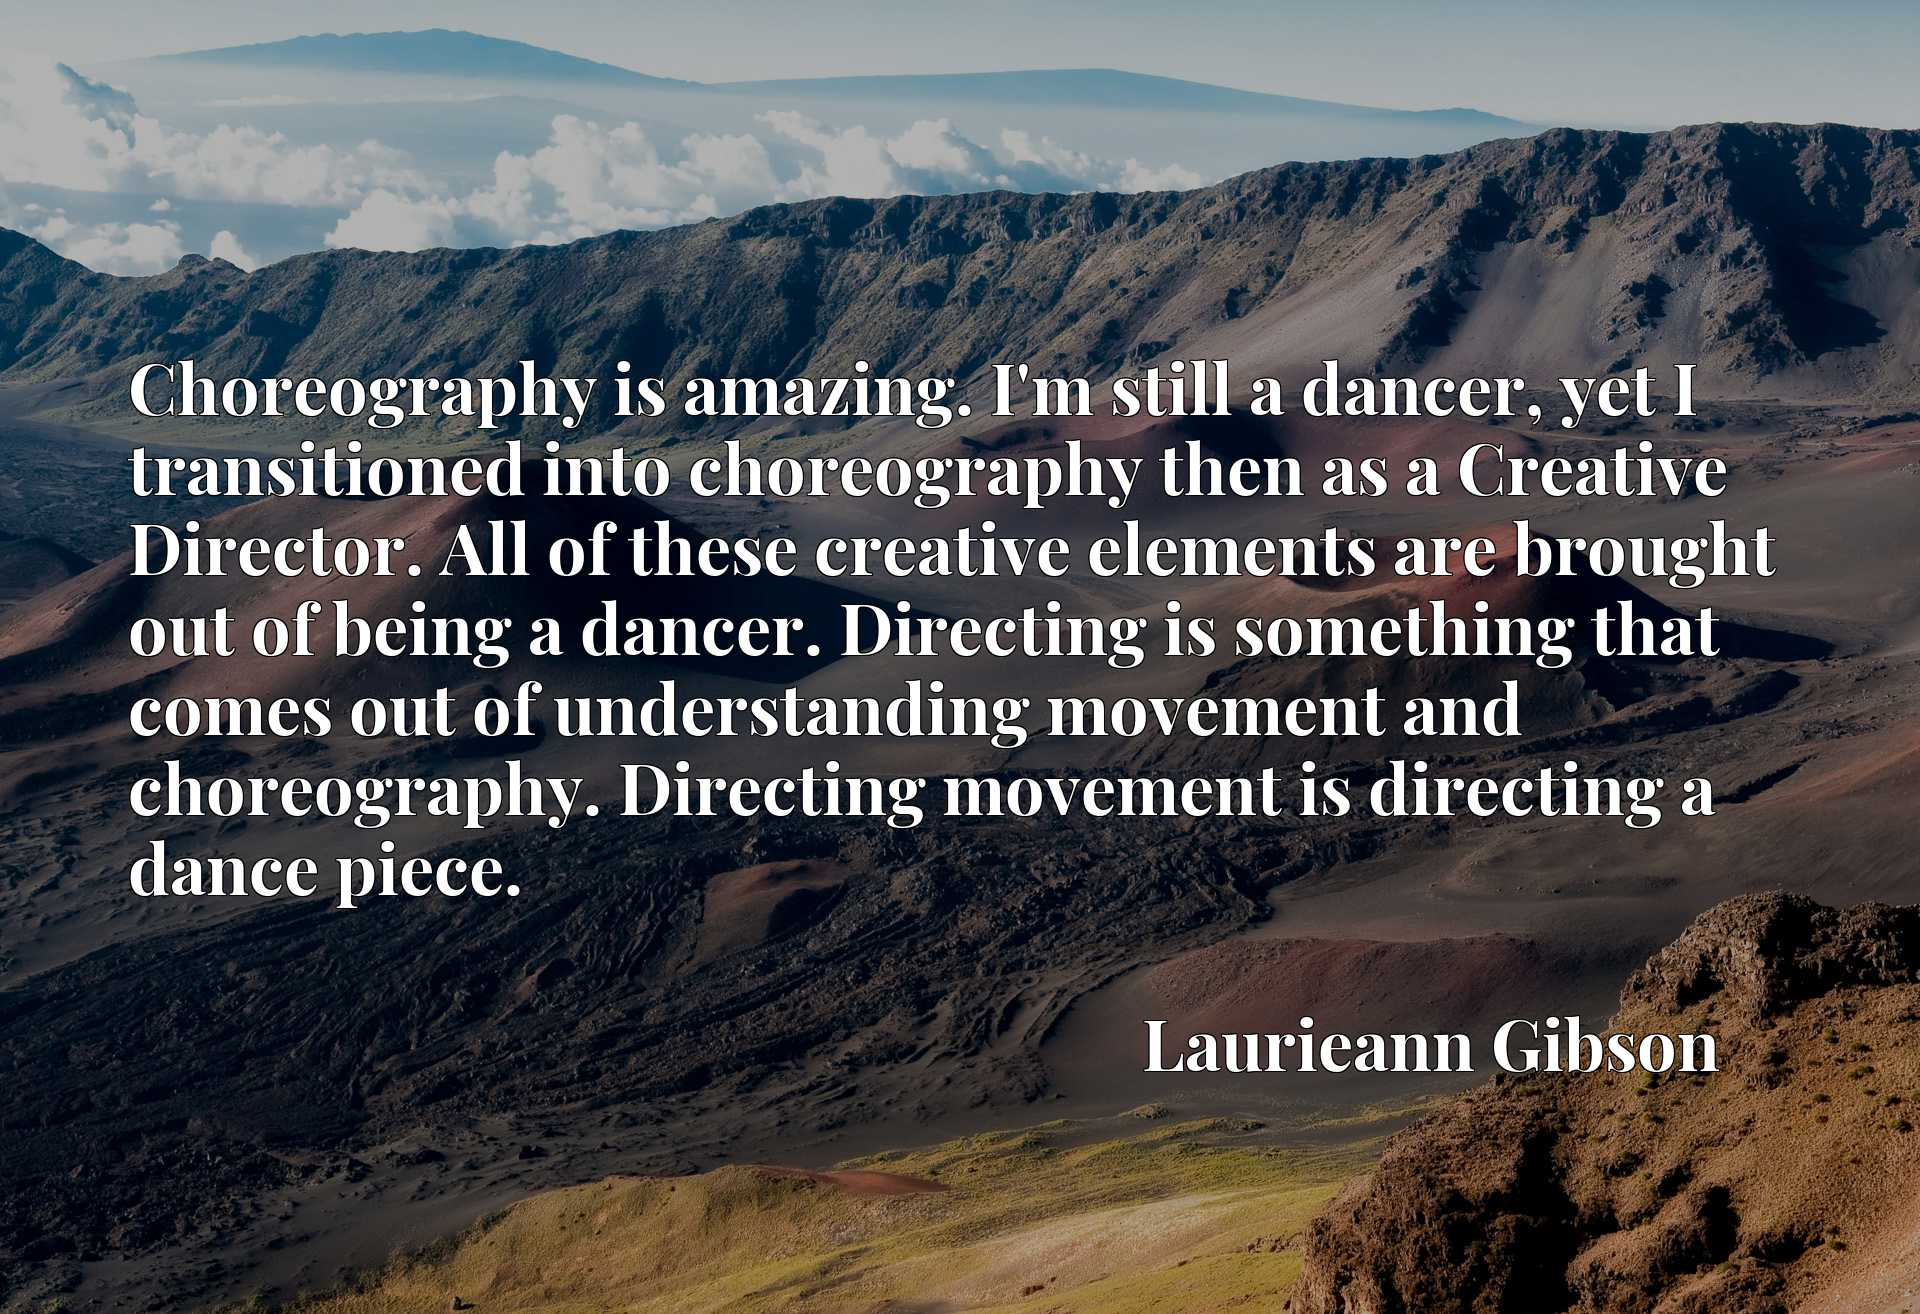 Choreography is amazing. I'm still a dancer, yet I transitioned into choreography then as a Creative Director. All of these creative elements are brought out of being a dancer. Directing is something that comes out of understanding movement and choreography. Directing movement is directing a dance piece.